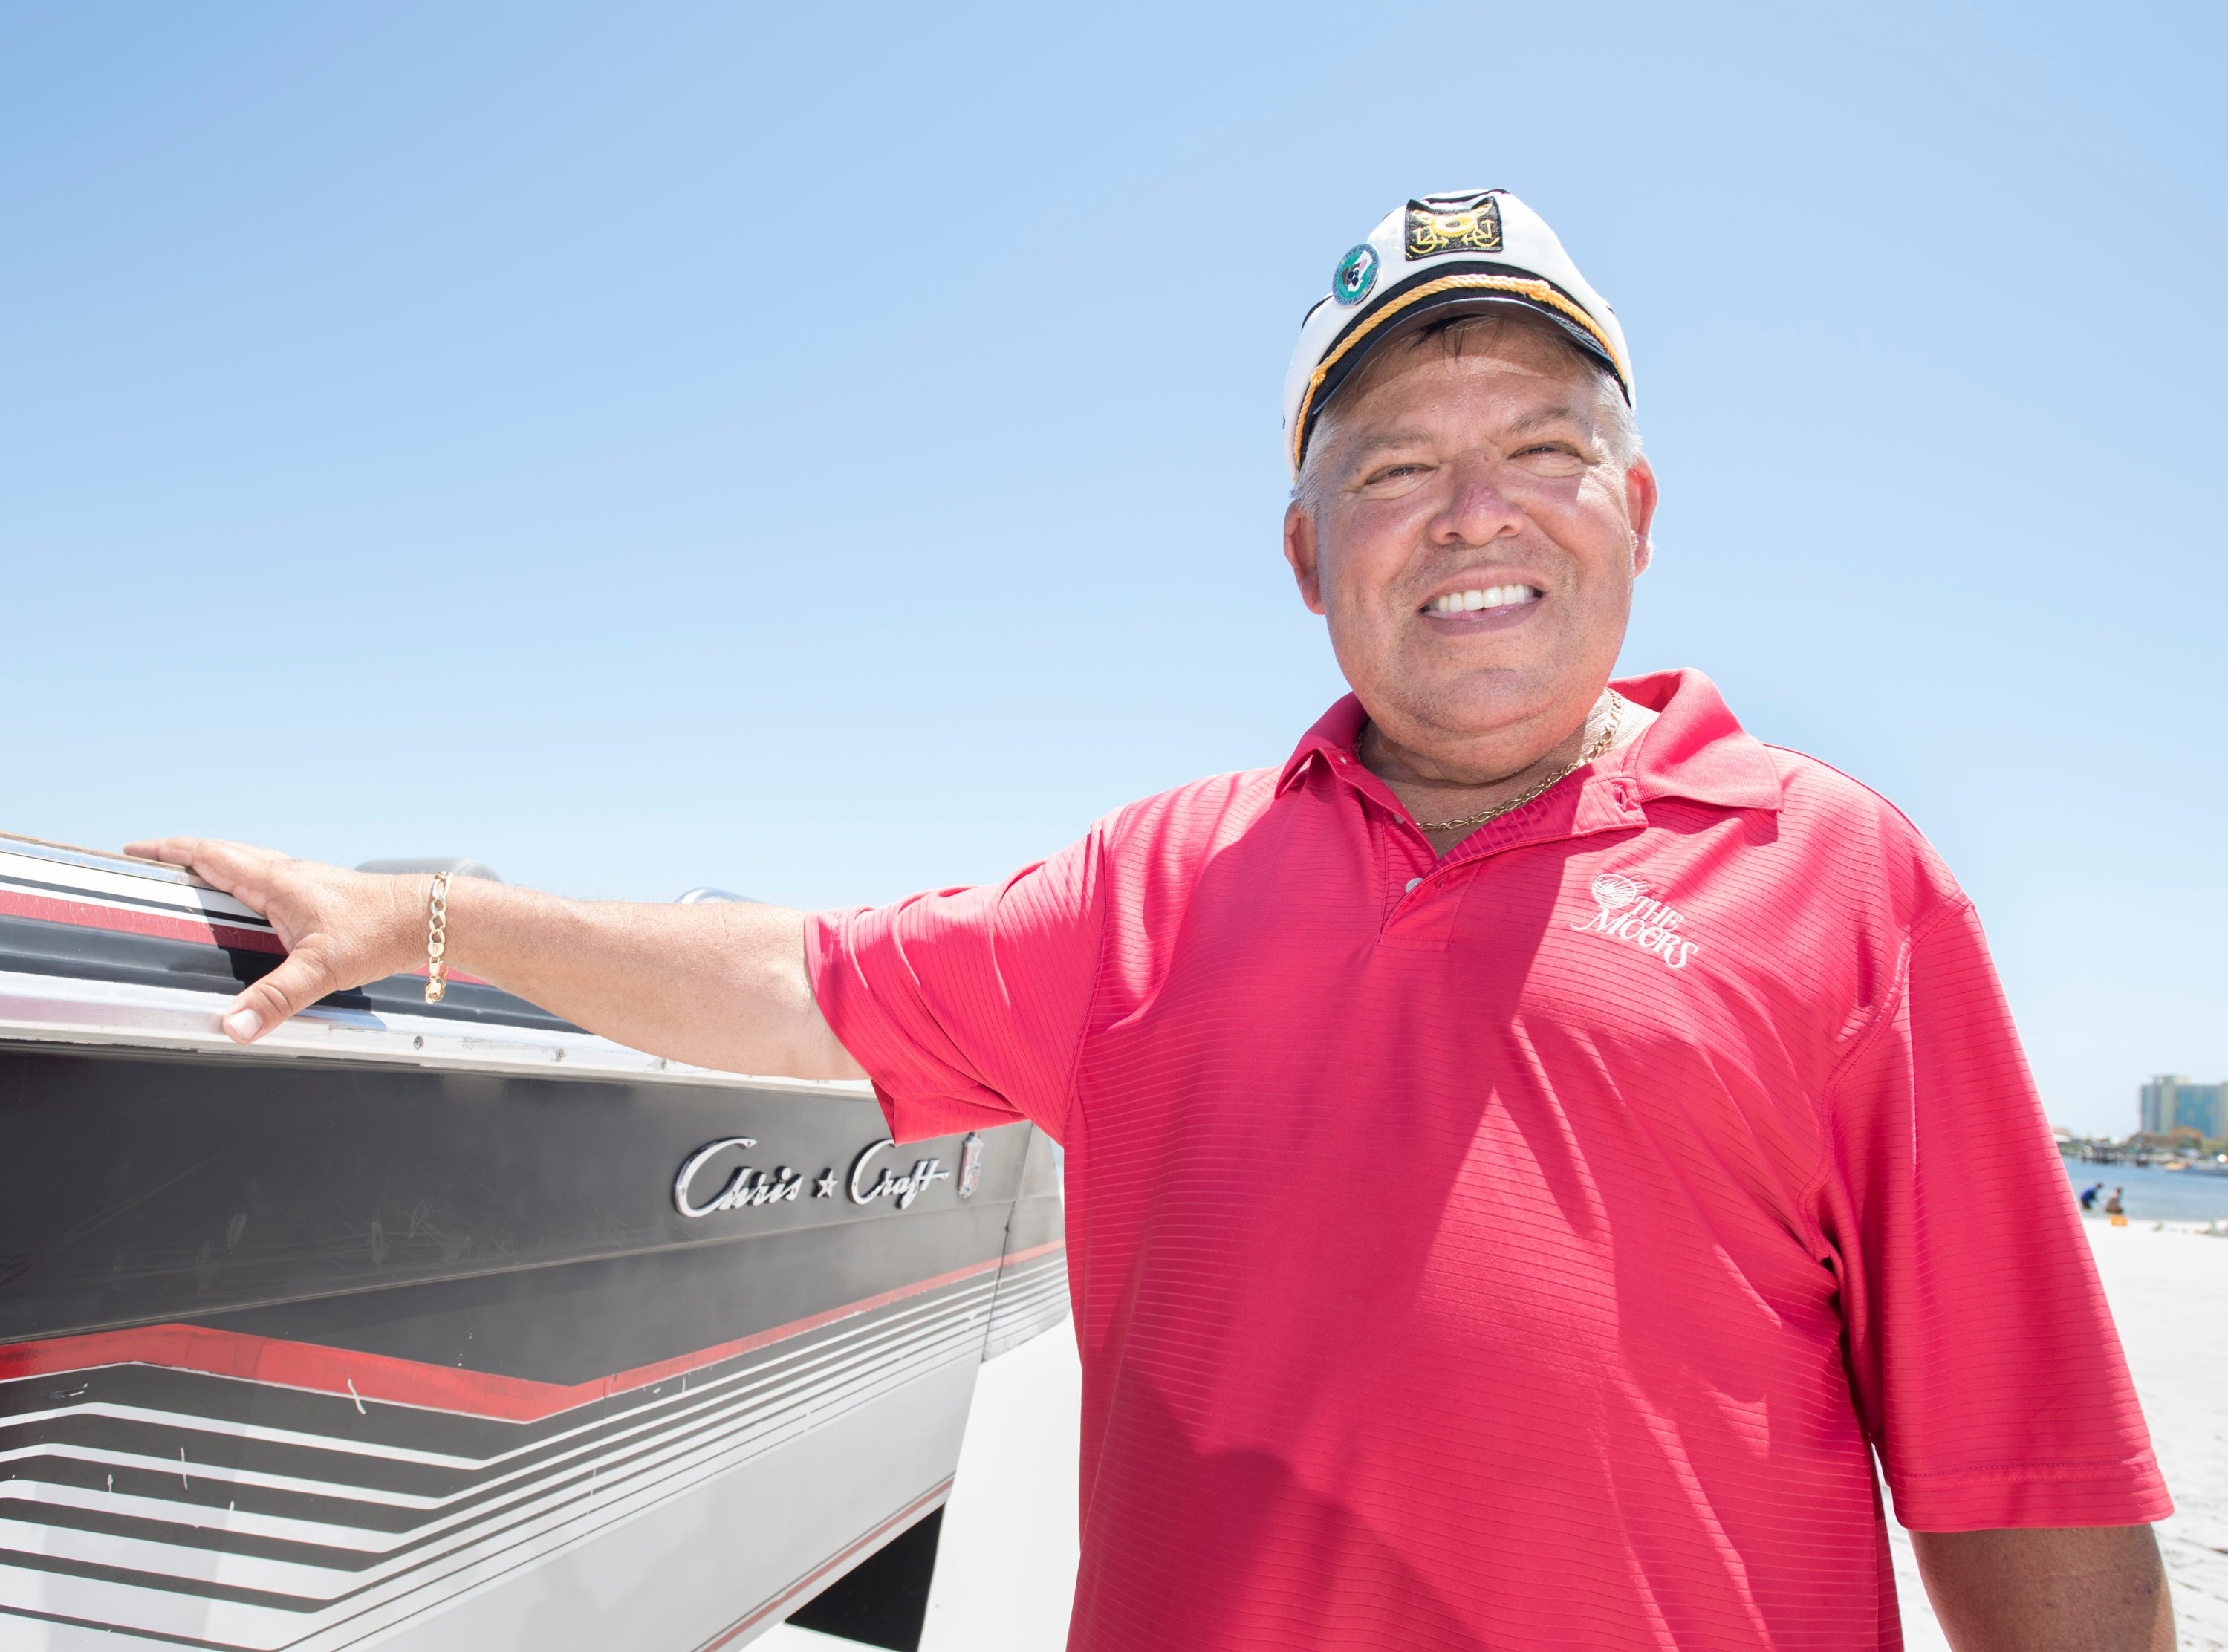 Gerry Moore stands alongside his home-crafted Boat Car in Pensacola on Tuesday, May 7, 2019.  The vehicle is a 1986 Chris Craft 210 Scorpion boat - 2003 Ford Expedition SUV hybrid created by Gerry.